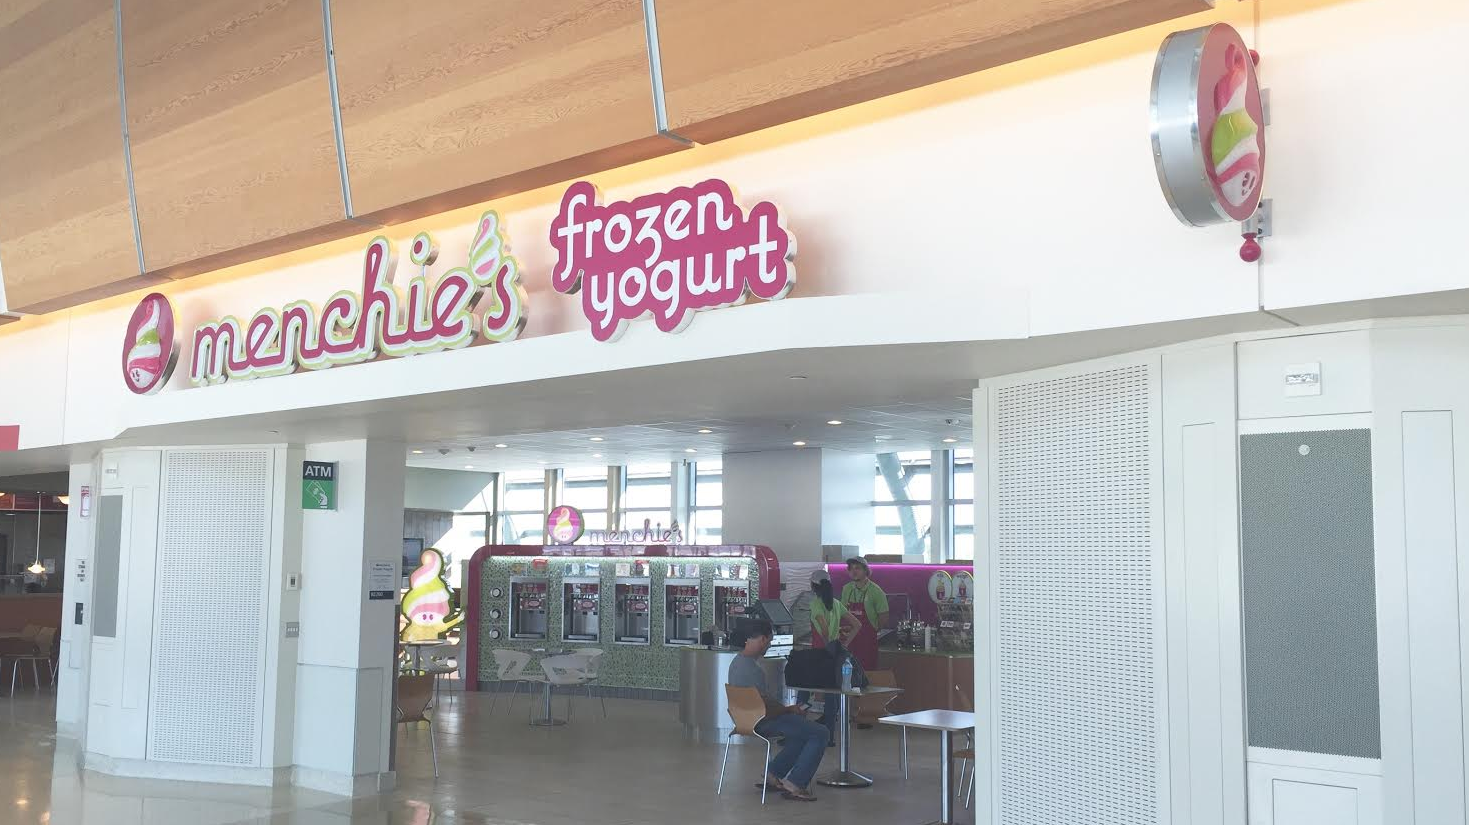 the san jose blog menchie s frozen yogurt opened first airport menchie s is located in terminal b near gate 19 and will be open daily from 5 30 a m to 10 30 p m if you are not travelling any time soon there is also